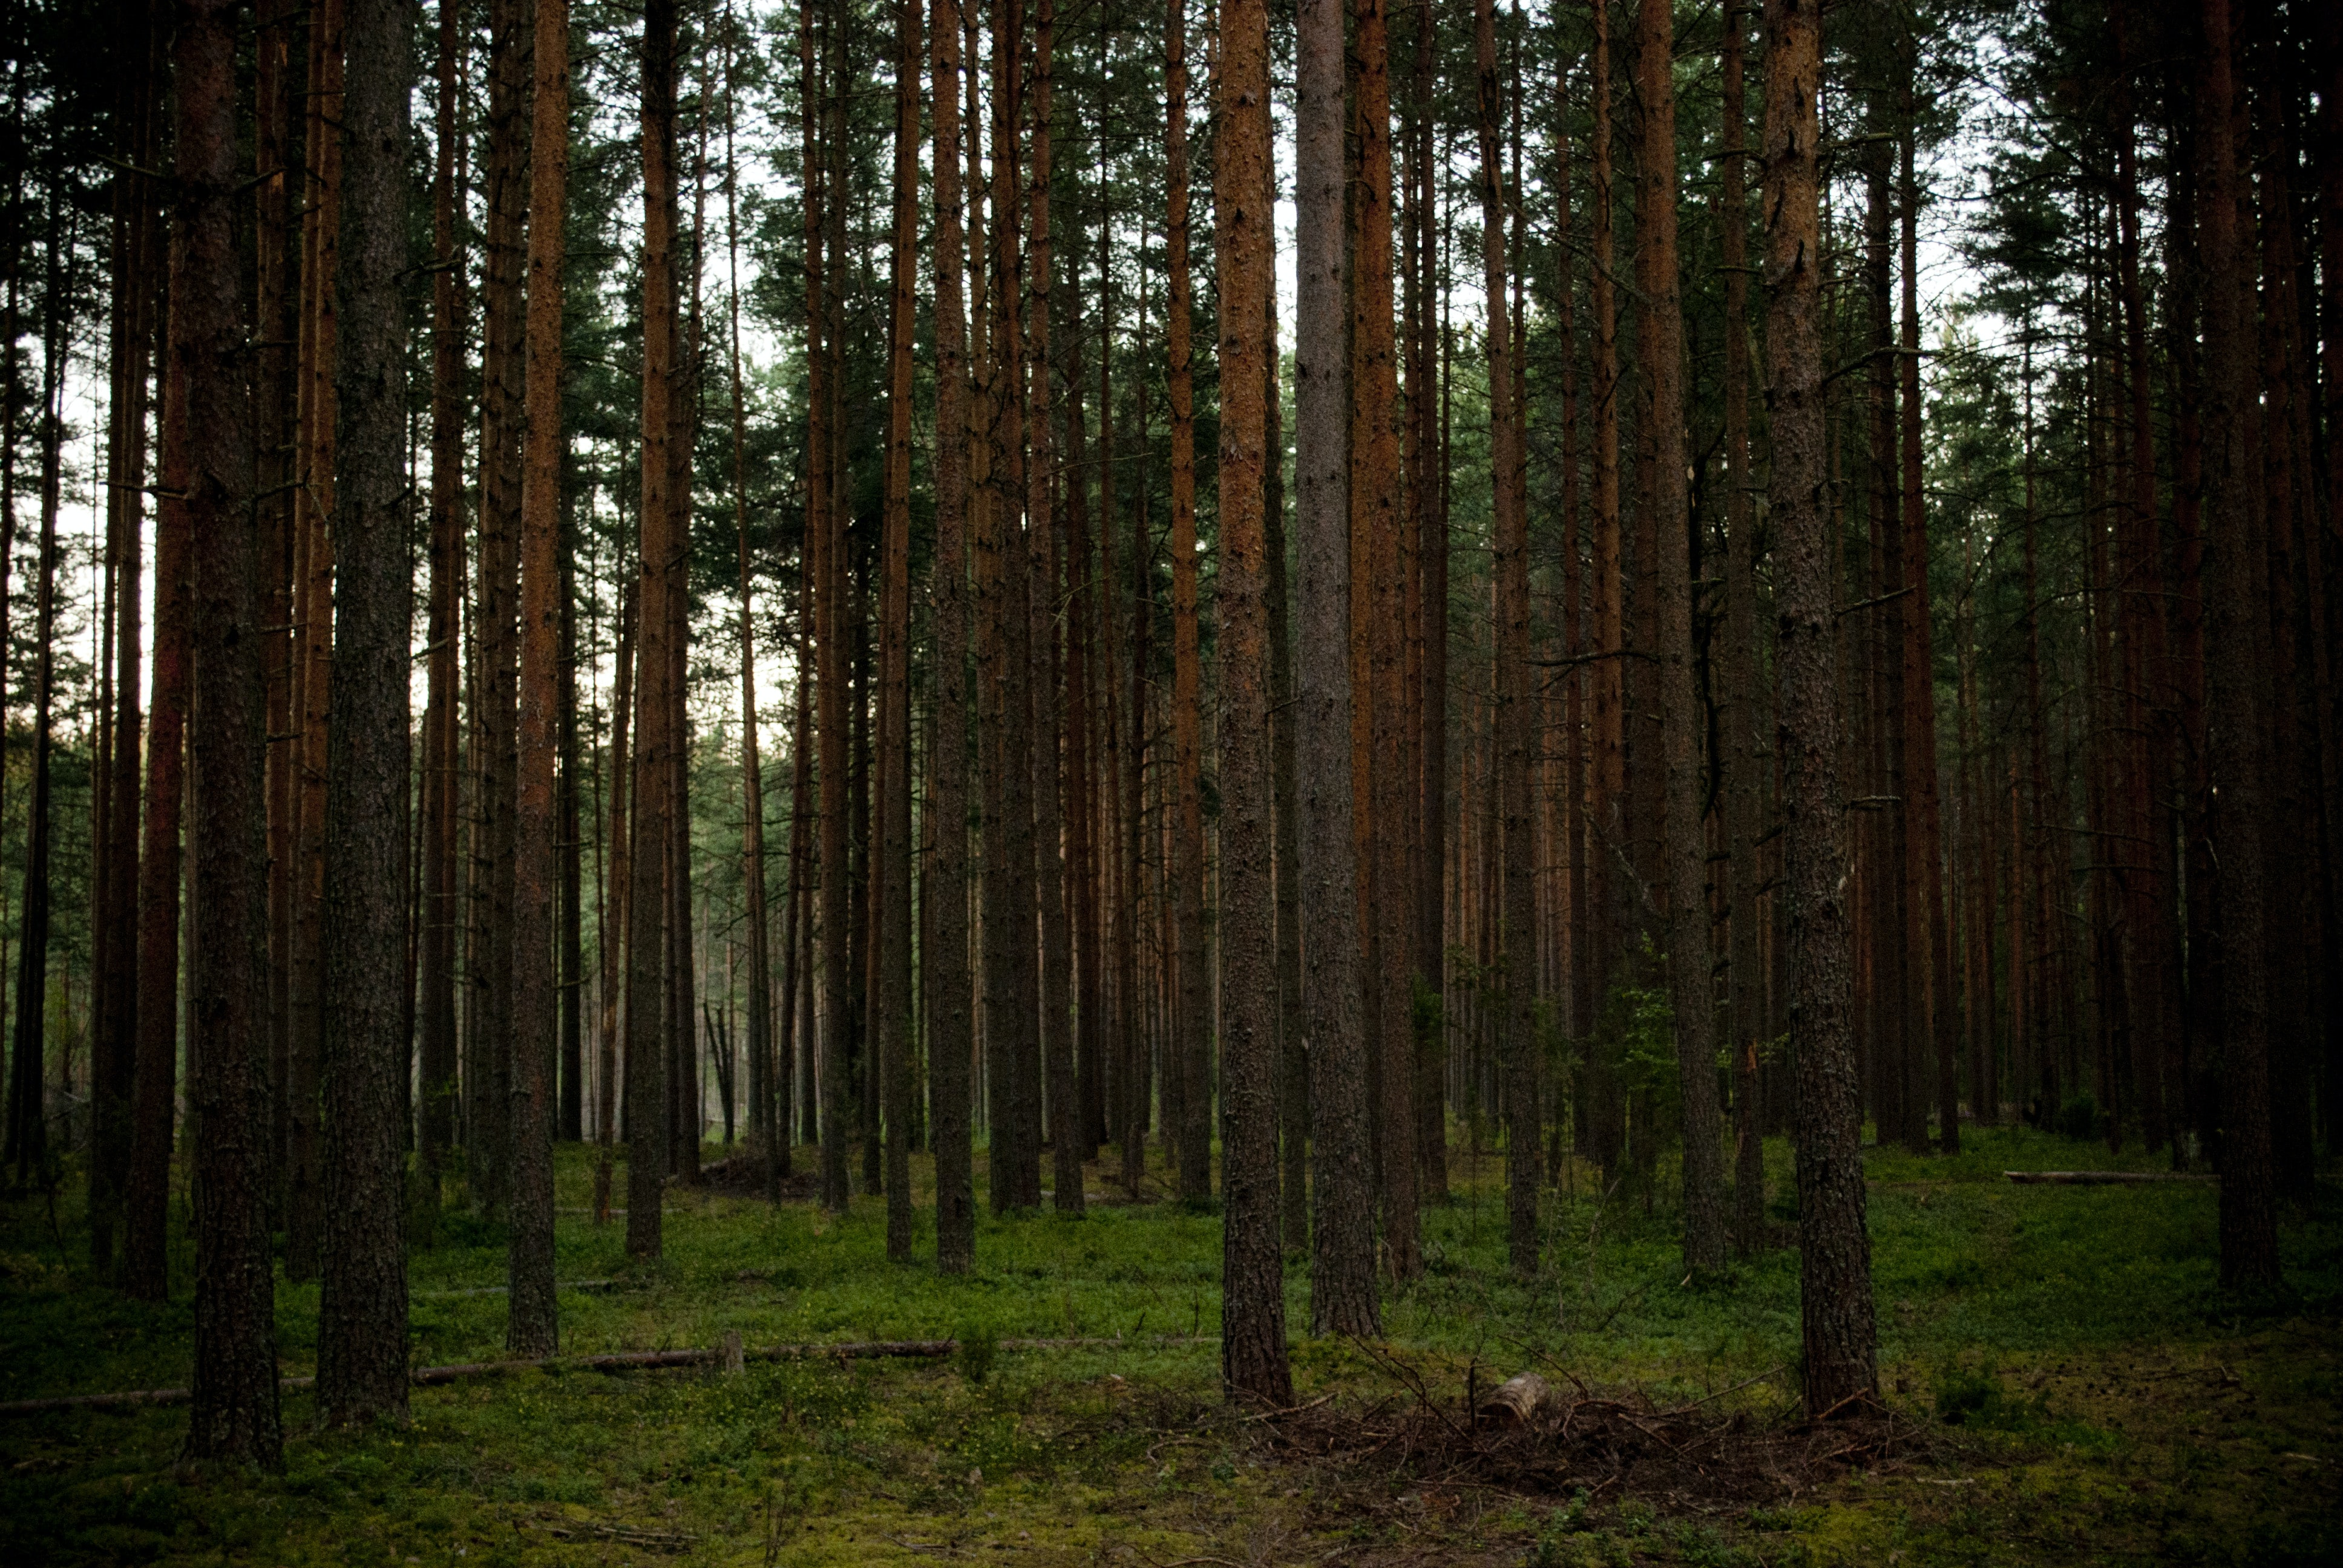 Tall trunks of coniferous trees in a forest